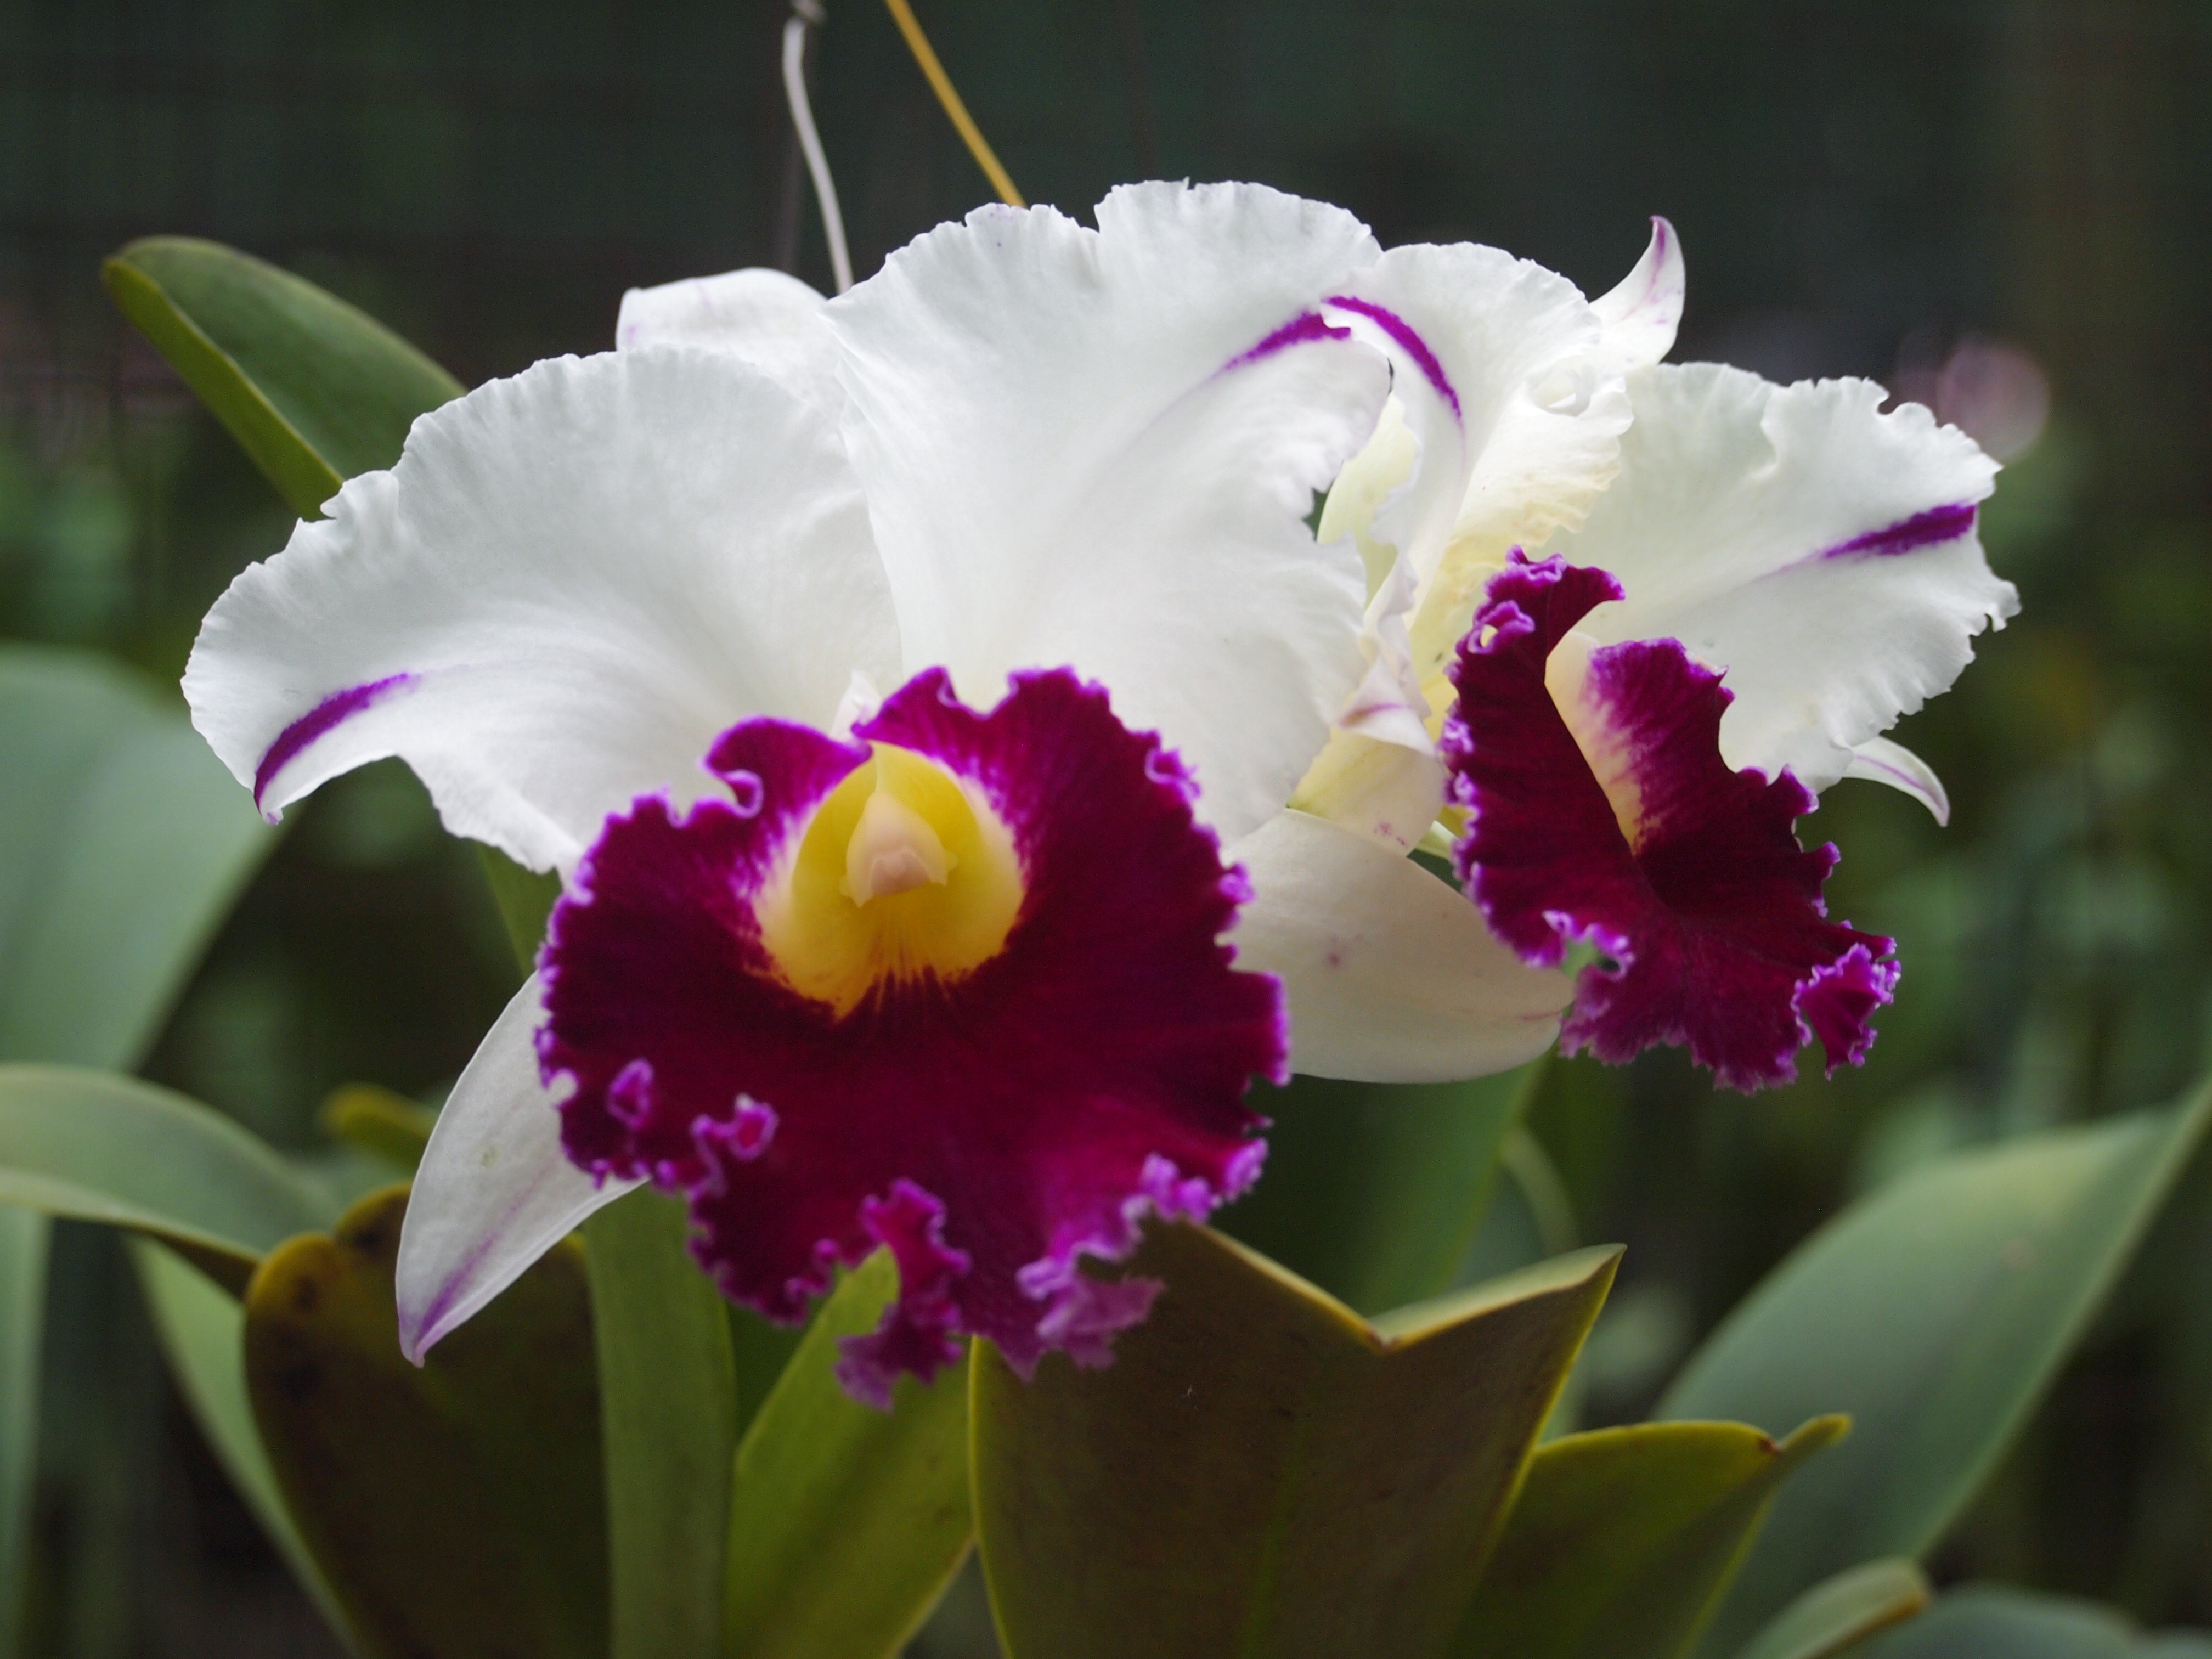 The Best Time To See Flowering Wild Orchids In Krabi Is